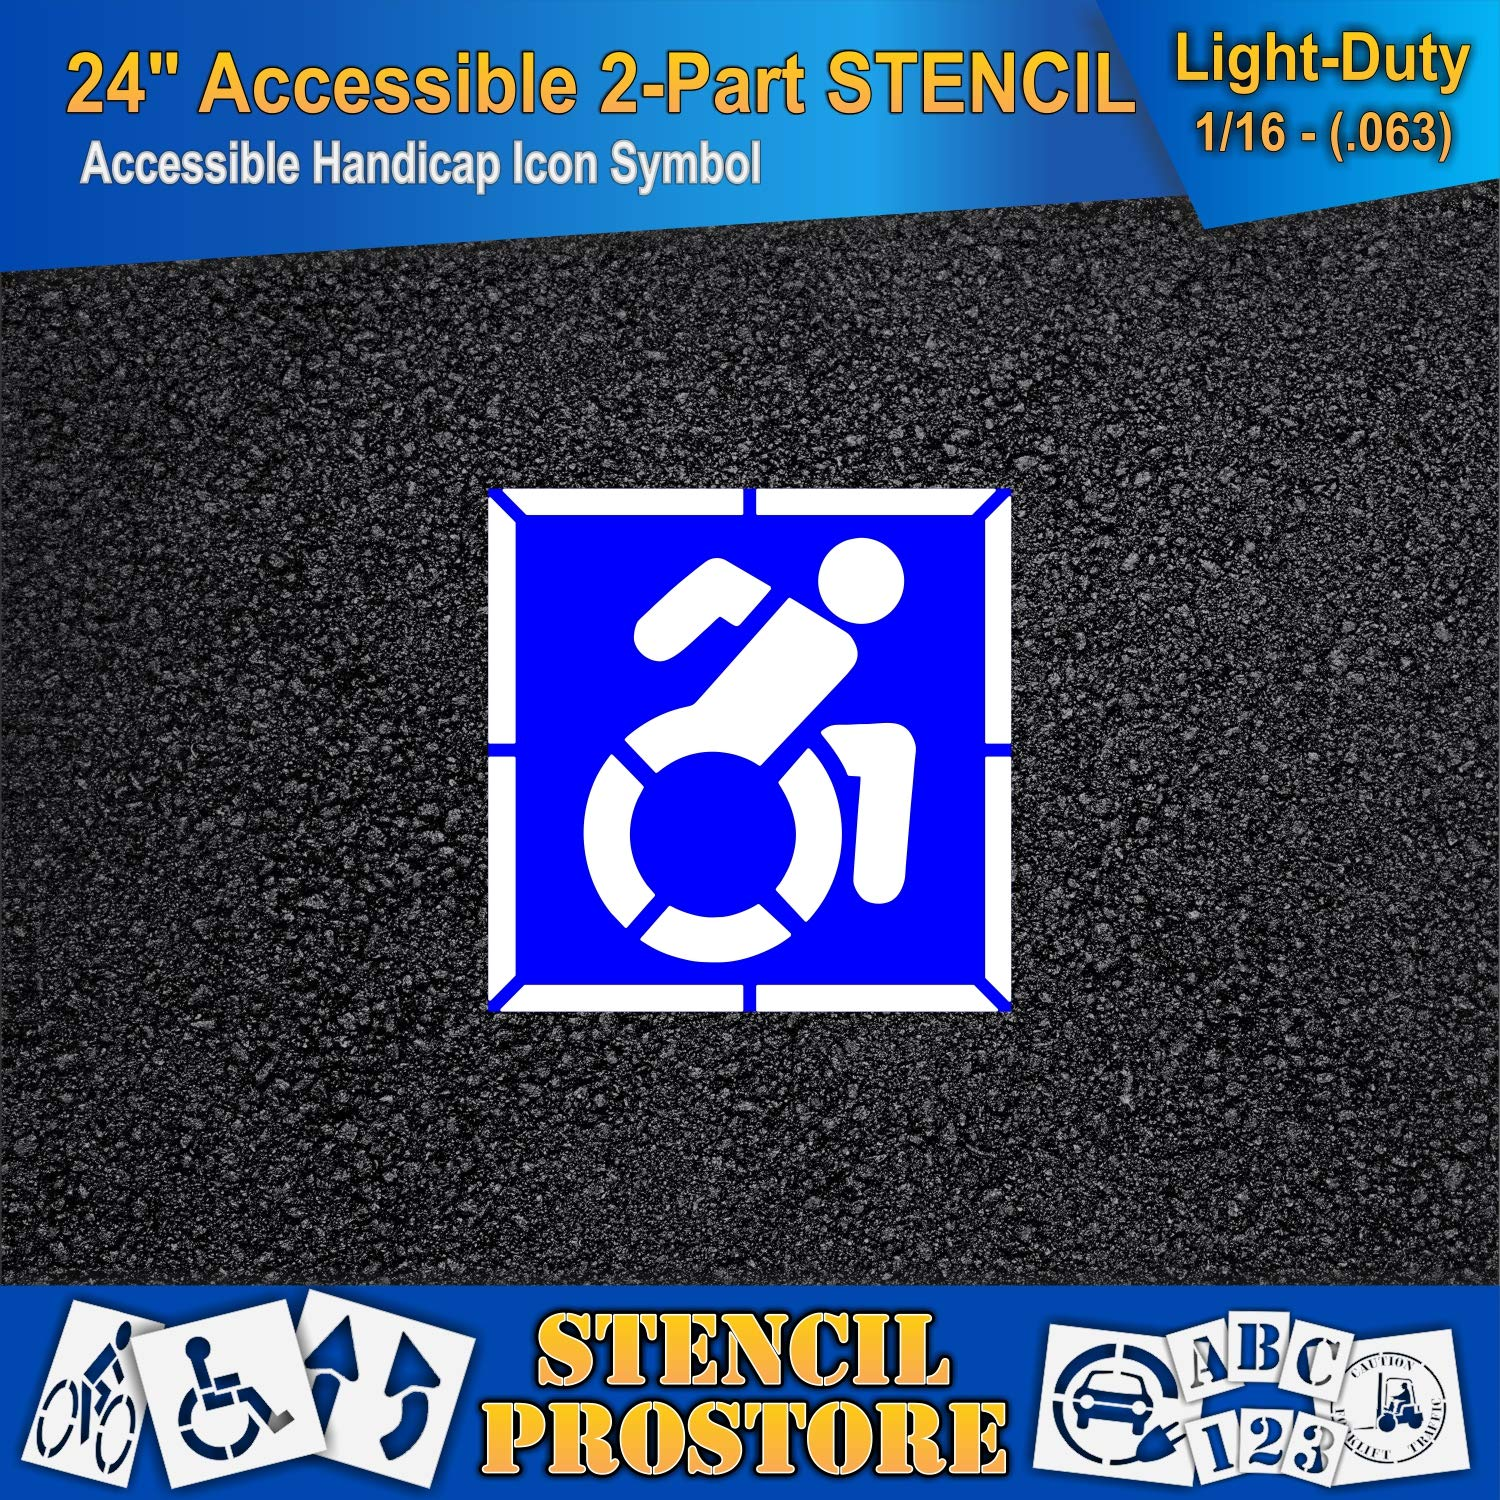 Pavement Stencils - 42 in - Accessible Icon Symbol Stencil with Background (2-Piece) - 42'' x 42'' x 1/16'' (63 mil) - Light-Duty by Stencil ProStore (Image #3)